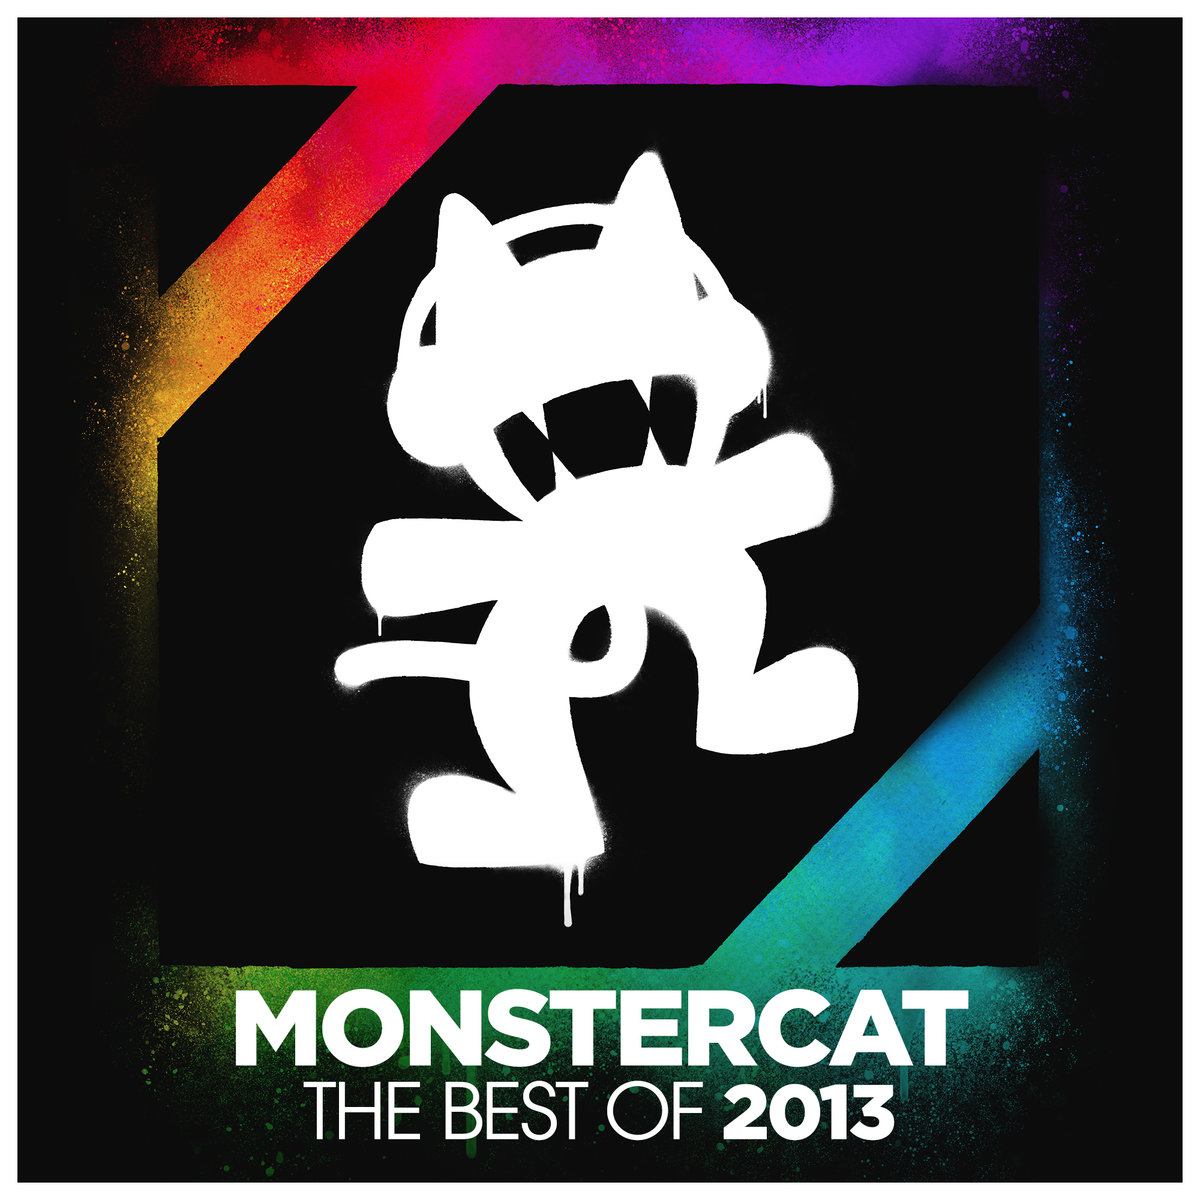 Melodies of Memories Past (Monstercat 2013 Orchestral Suite)